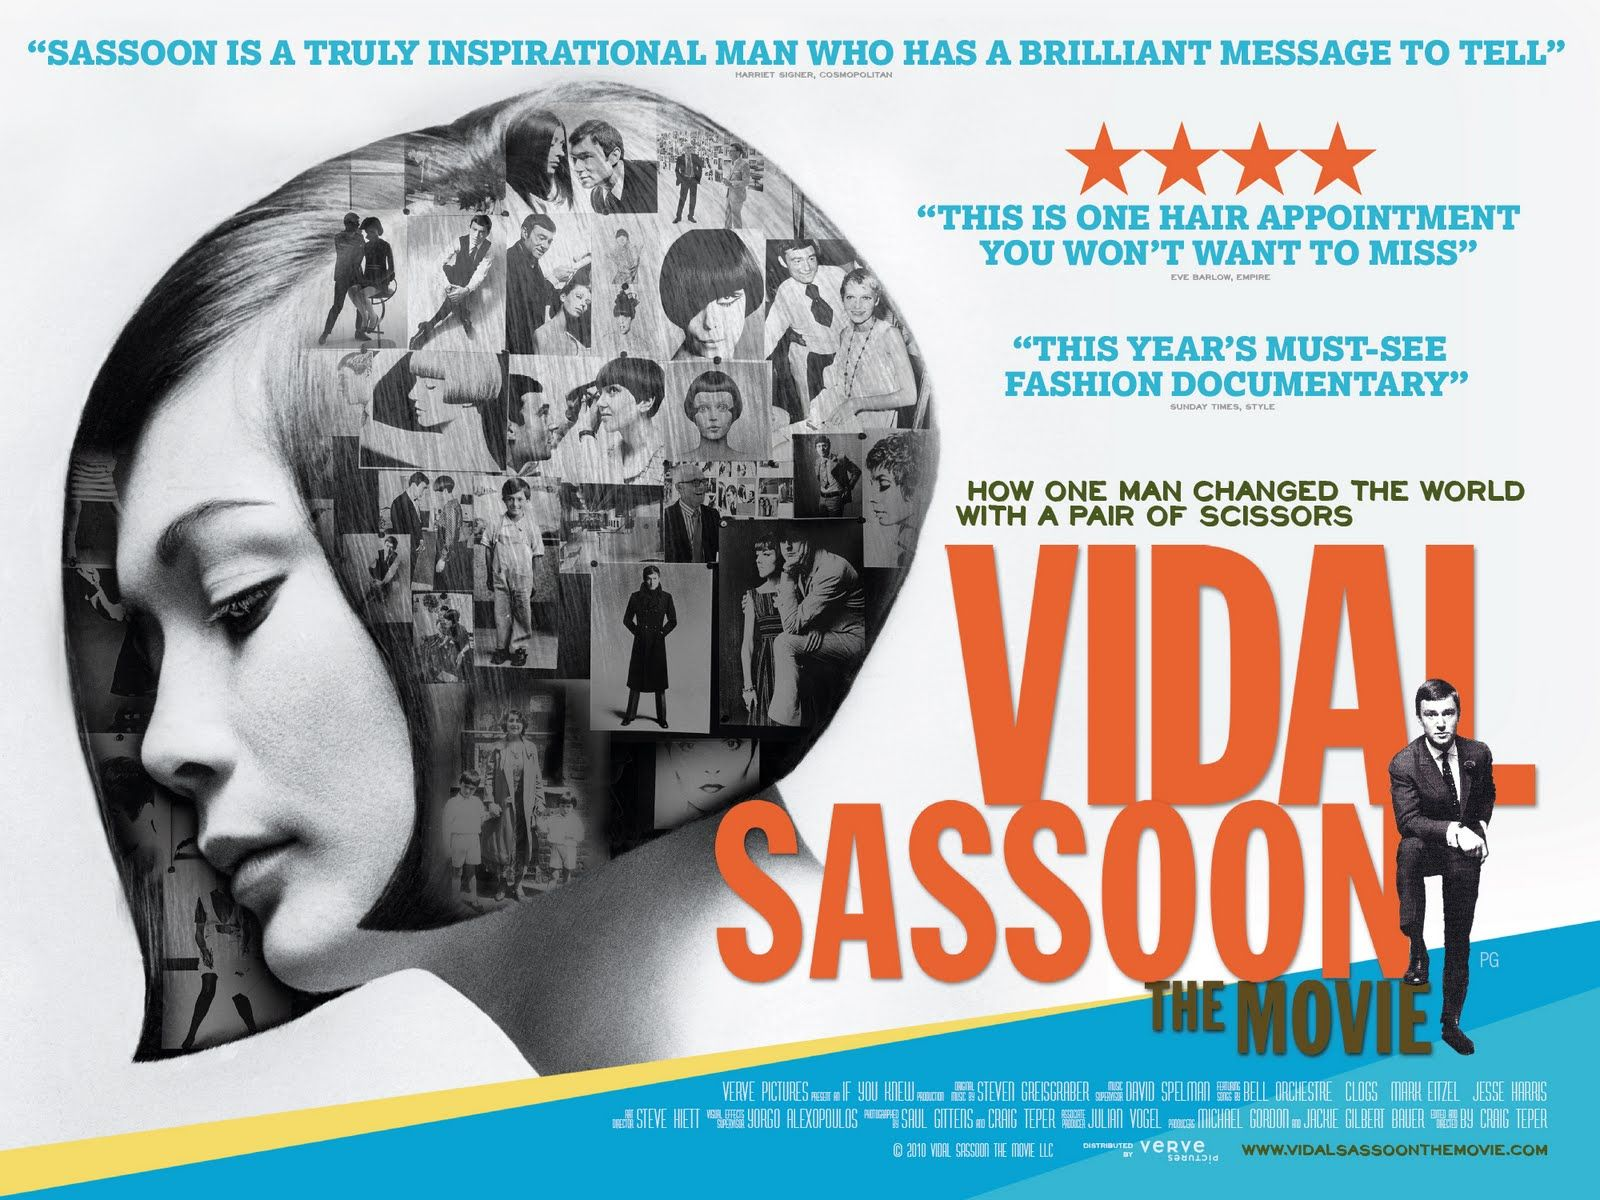 Vidal Sassoon documentary poster.  I just saw this film this morning on one of the premium channels and was quite impressed with the man.  It has great footage from the 60's.